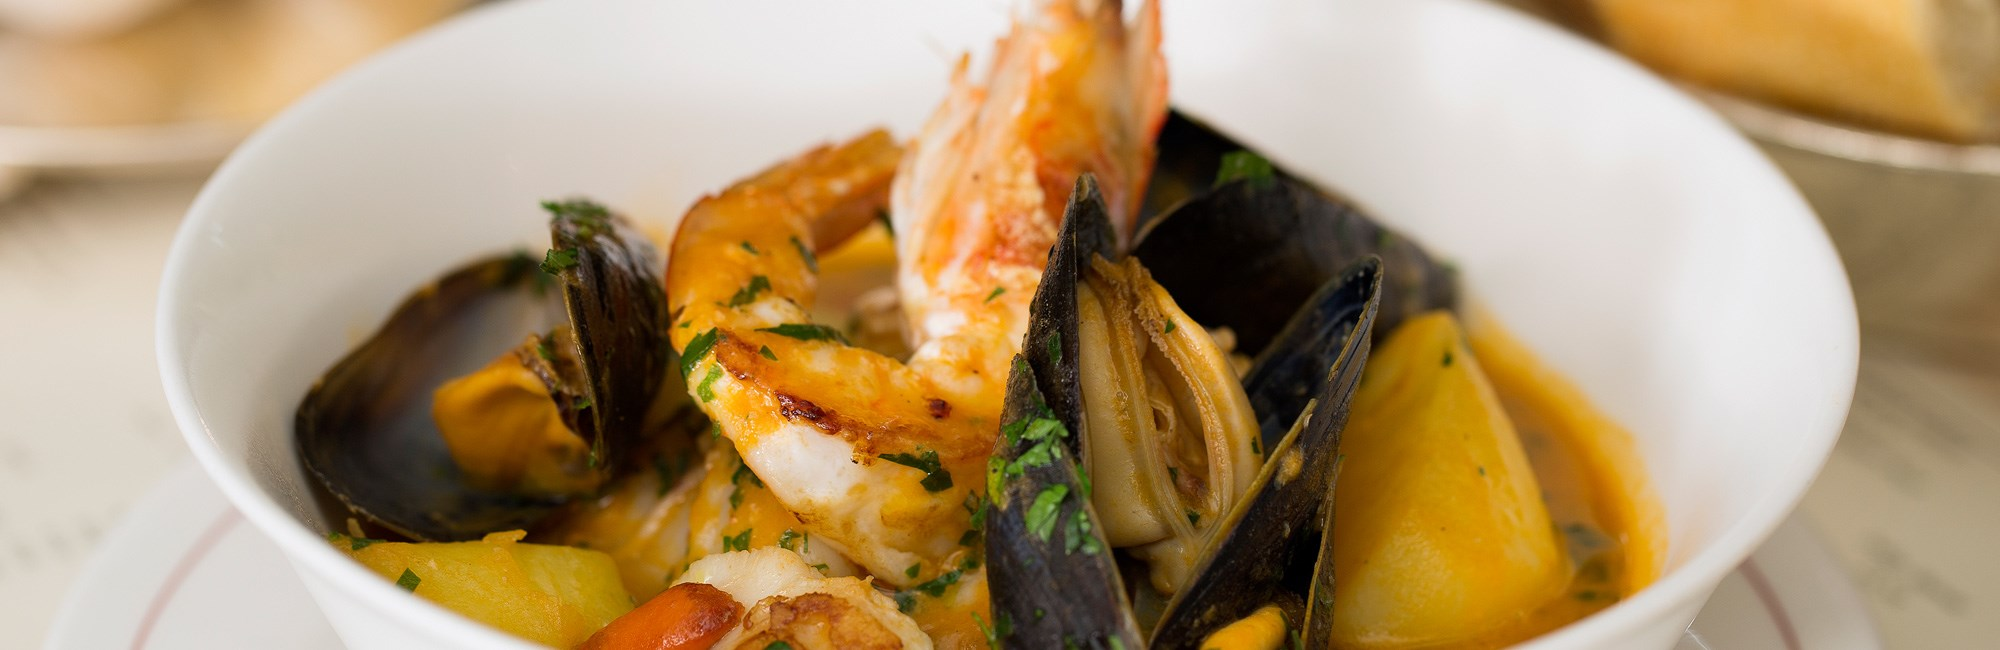 Fish Stew available at Seafood and Fish Restaurant J Sheekey Atlantic Bar located near Covent Garden